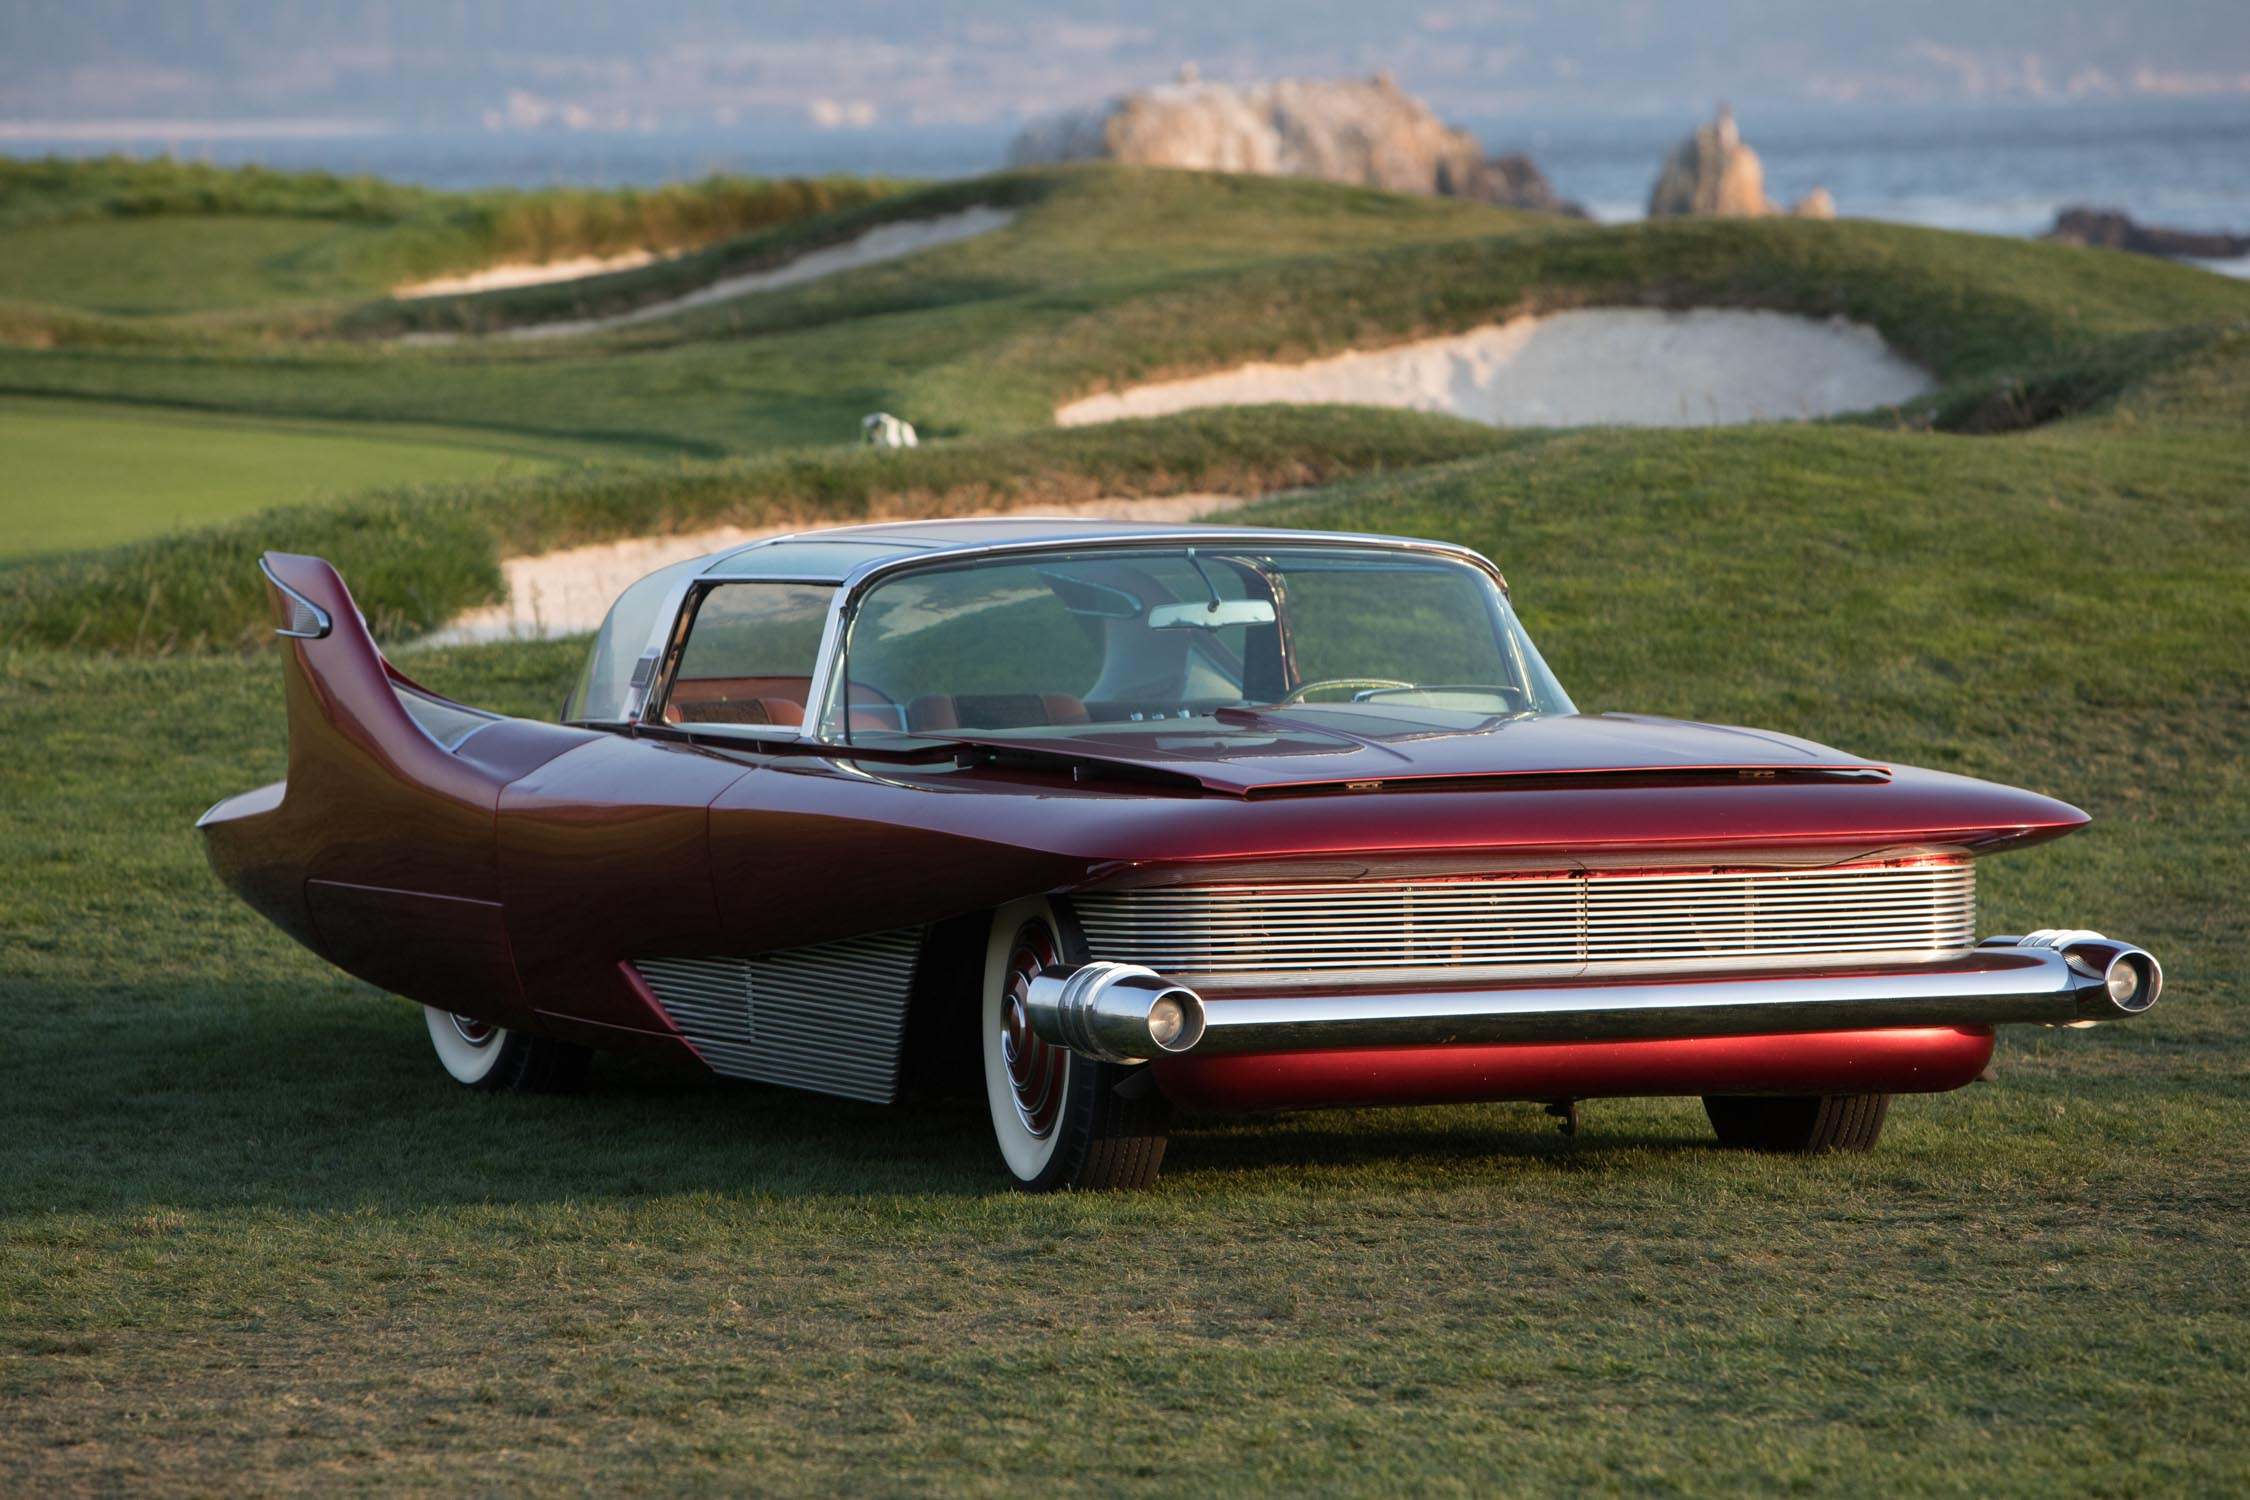 2017 Pebble Beach Concours: American Dream Cars of the 1960s - » AutoNXT